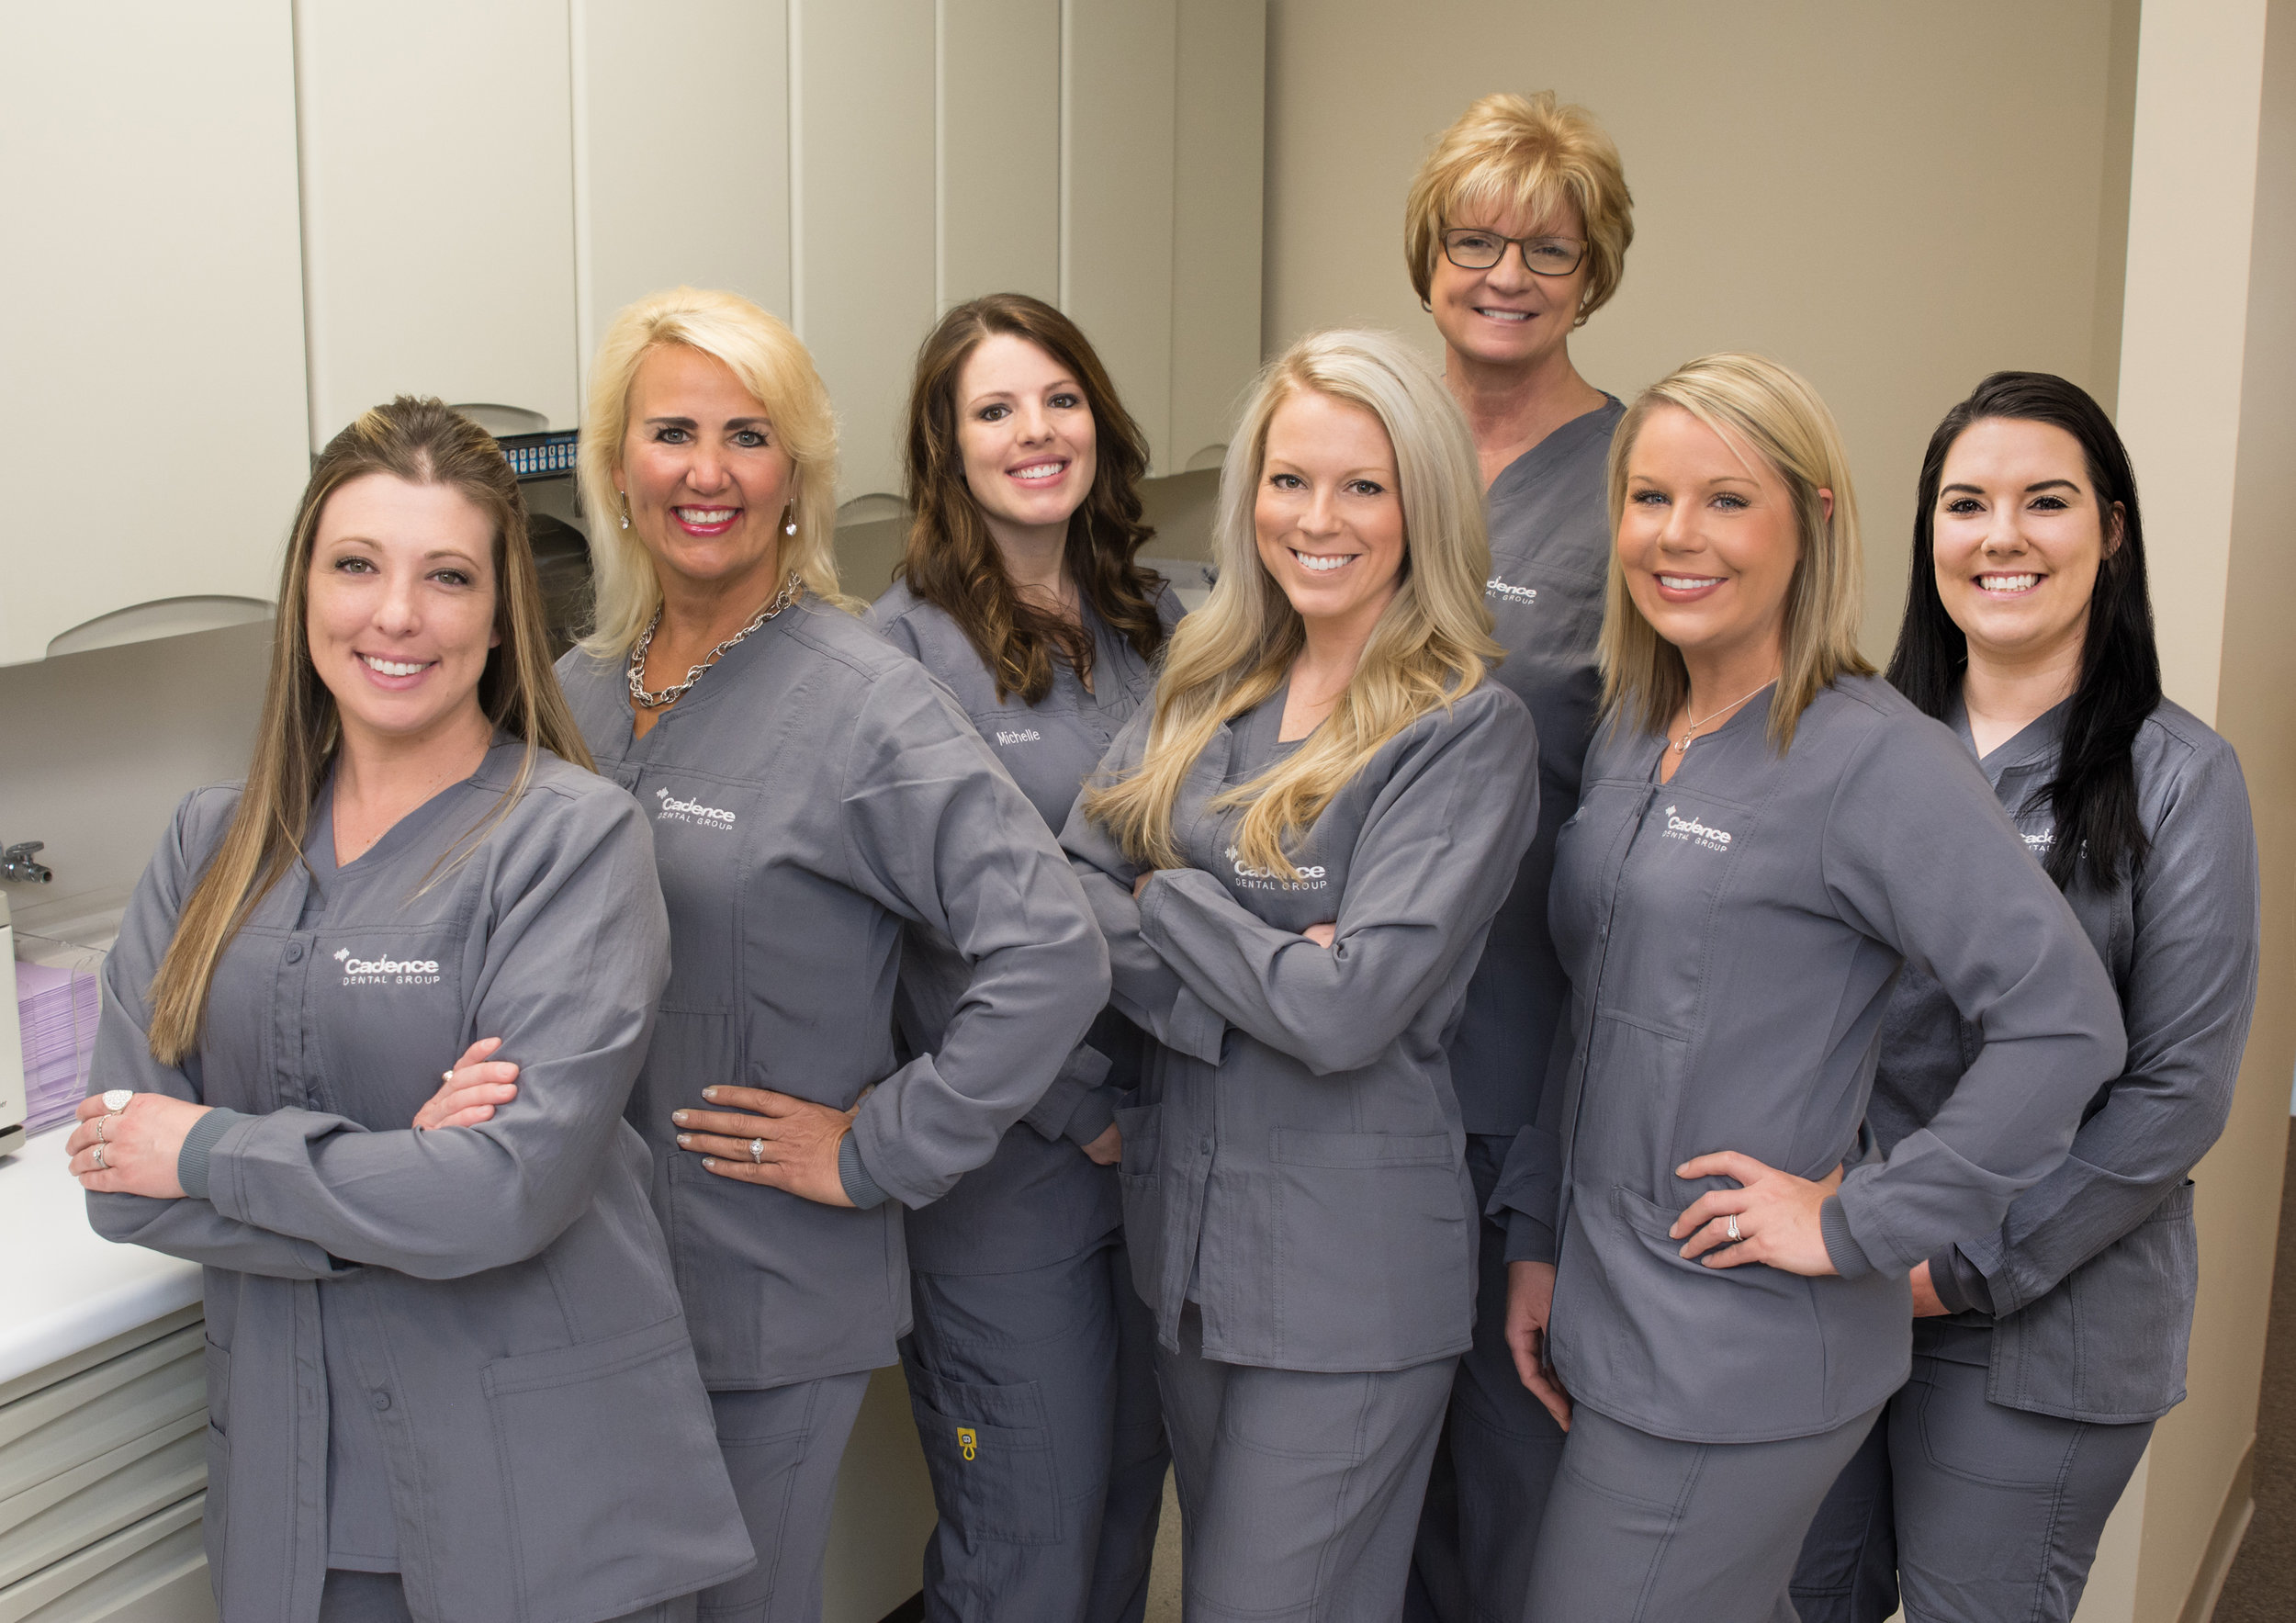 Your Expanded Function Dental Assistants (EFDA): Amy, Melinda, Michelle, Nikki, Cathy, Cat and Rebekah